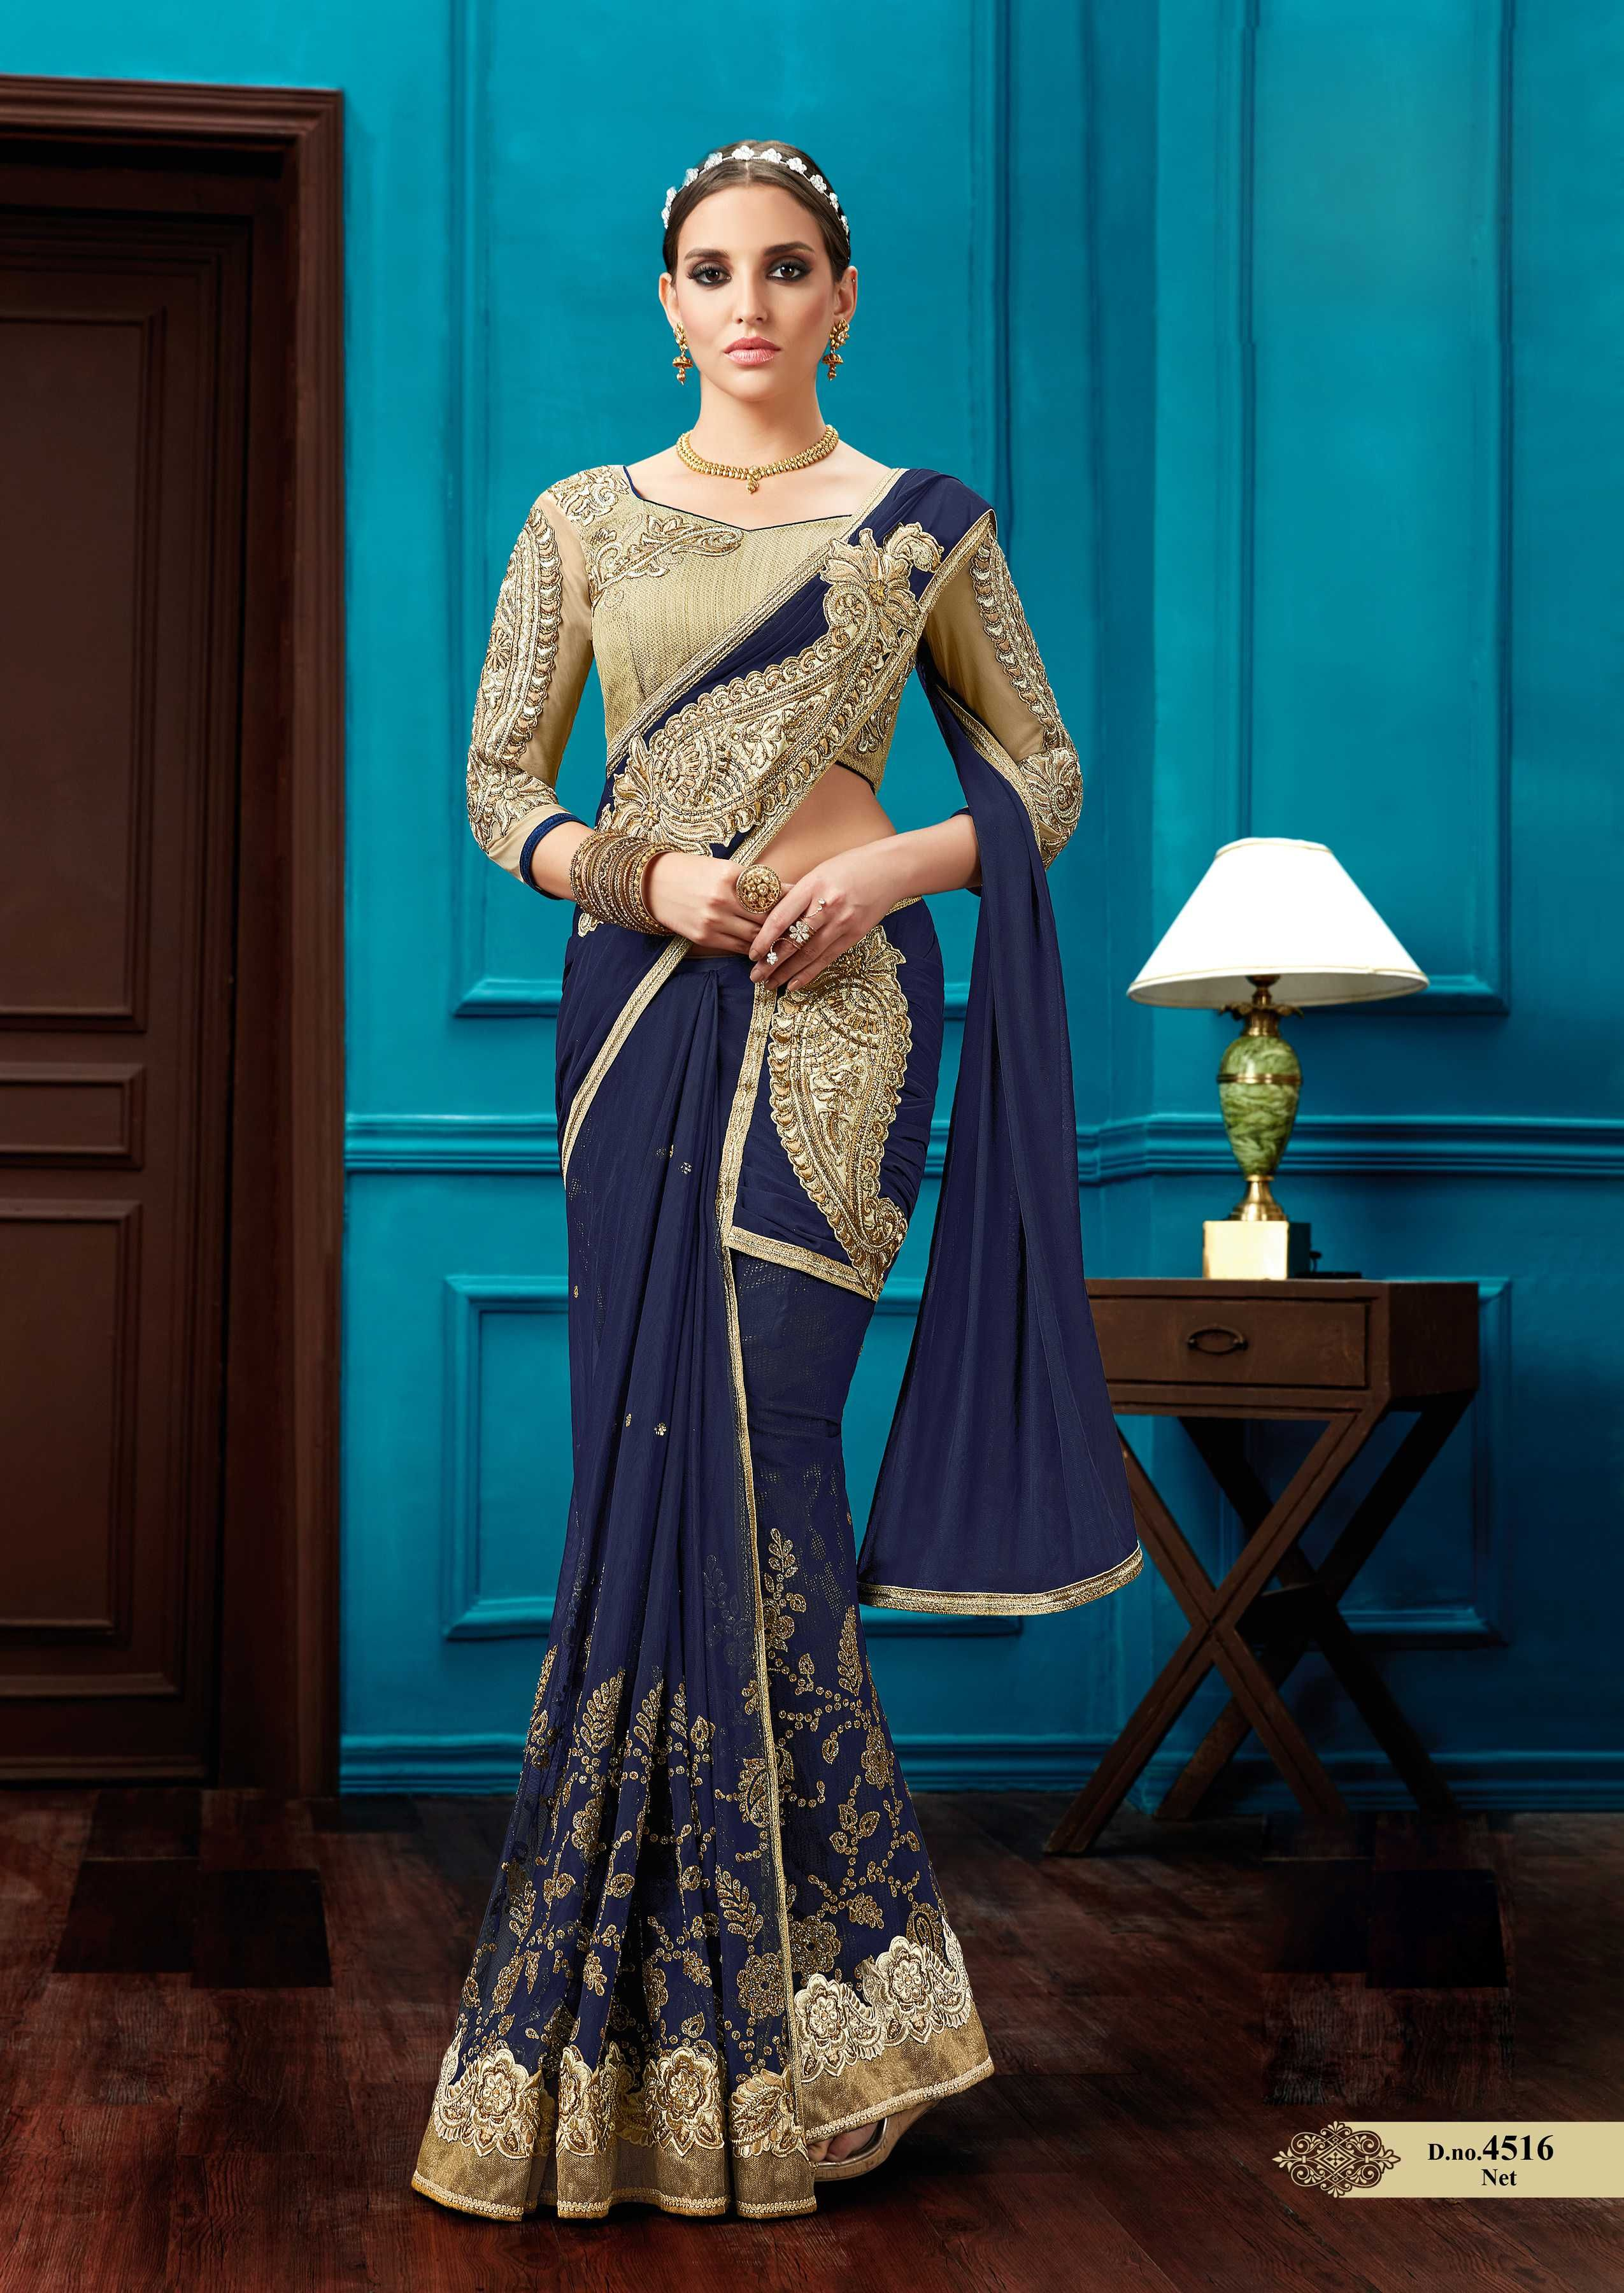 Pin by akbar on Haute couture | Pinterest | Saree, Indian designer ...